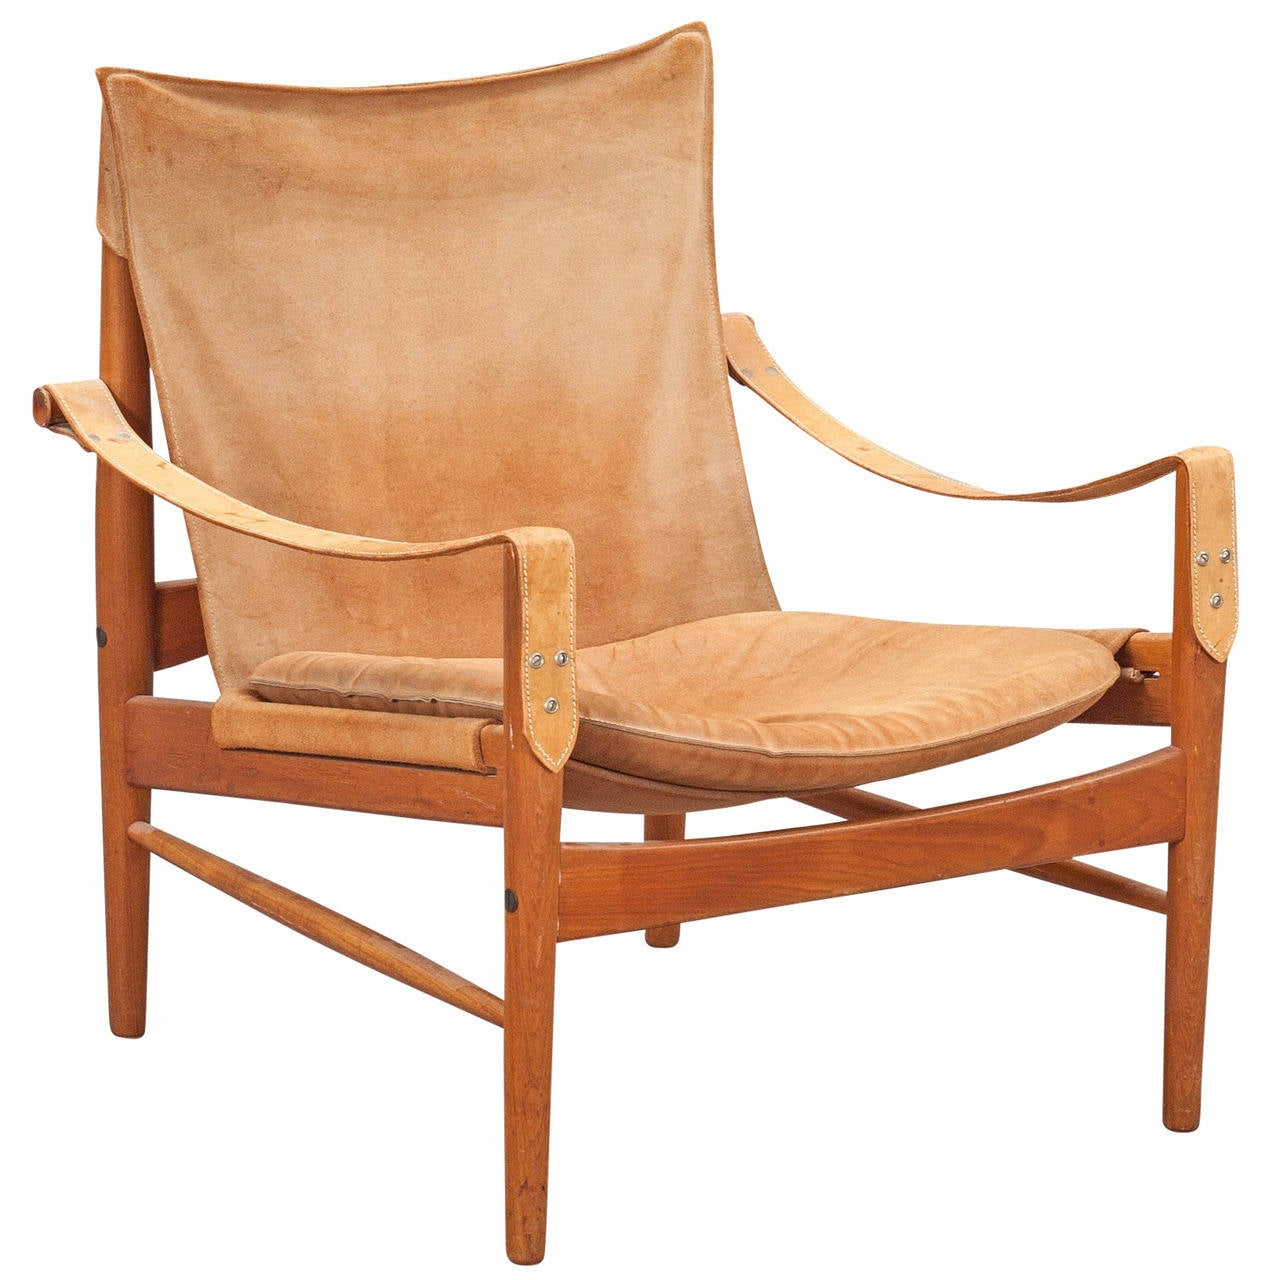 Charming Hans Olsen, 1960s Suede And Leather Safari Chair At 1stdibs